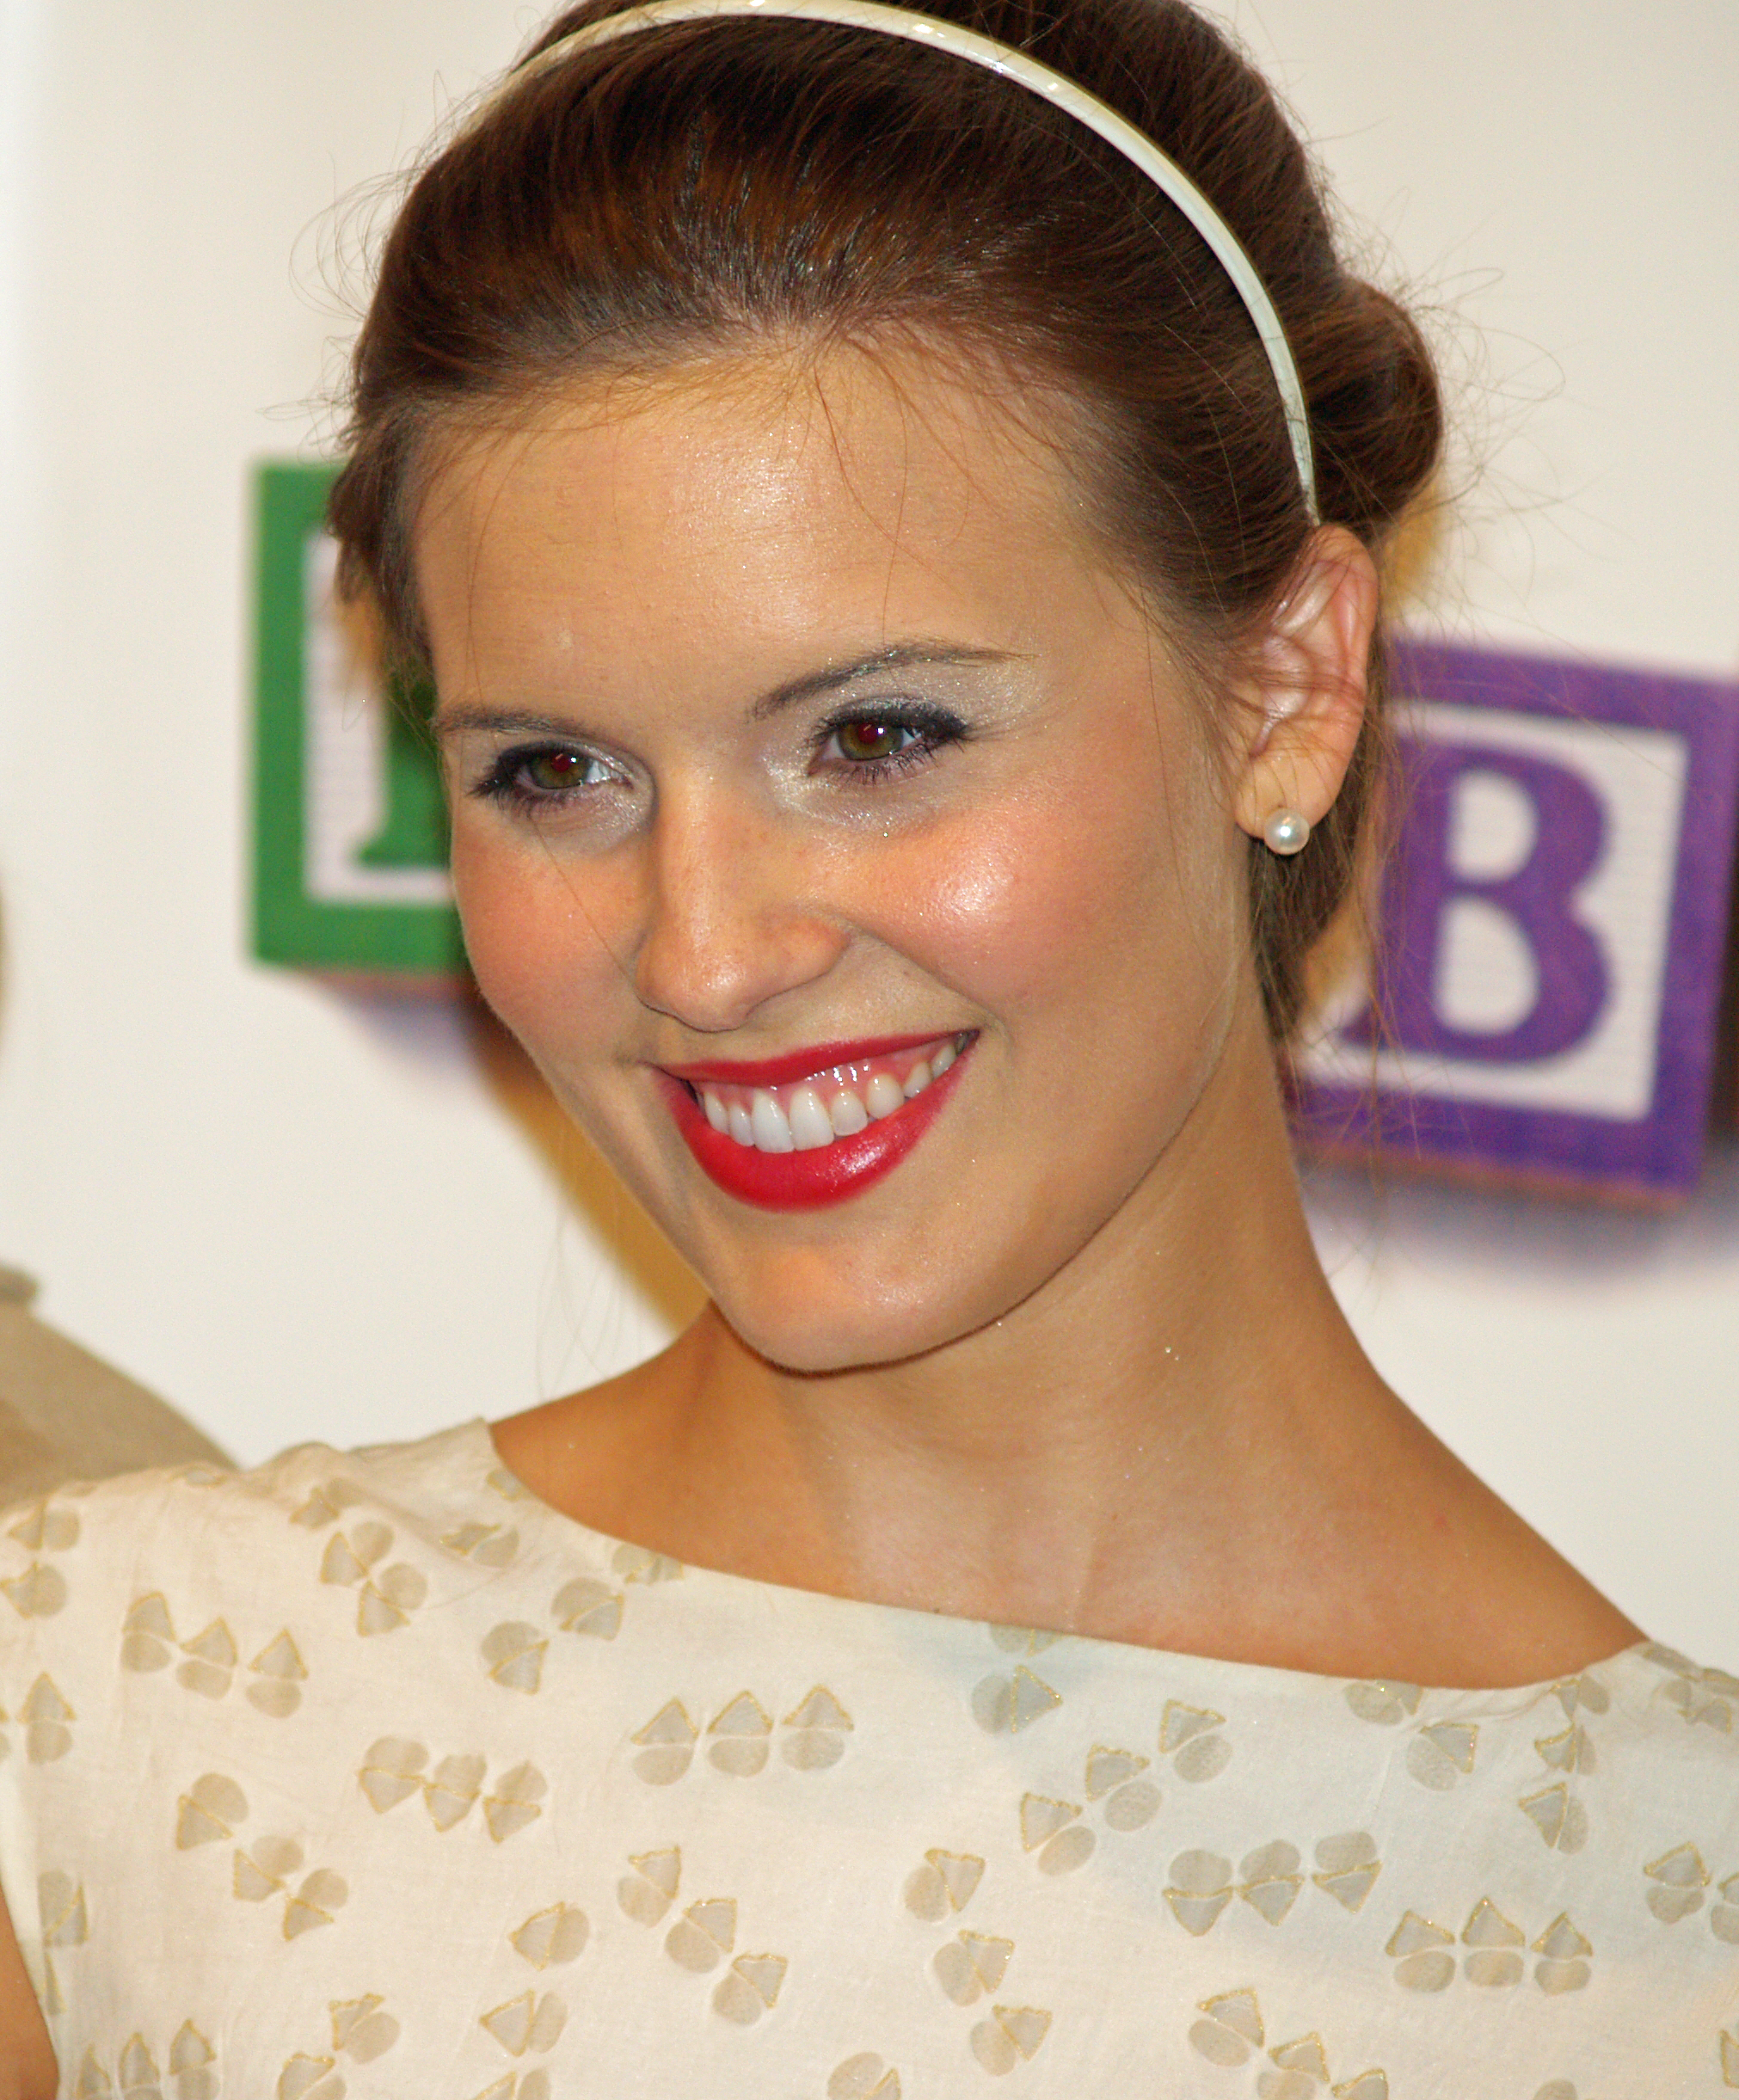 http://upload.wikimedia.org/wikipedia/commons/3/3d/Maggie_Grace_by_David_Shankbone.jpg